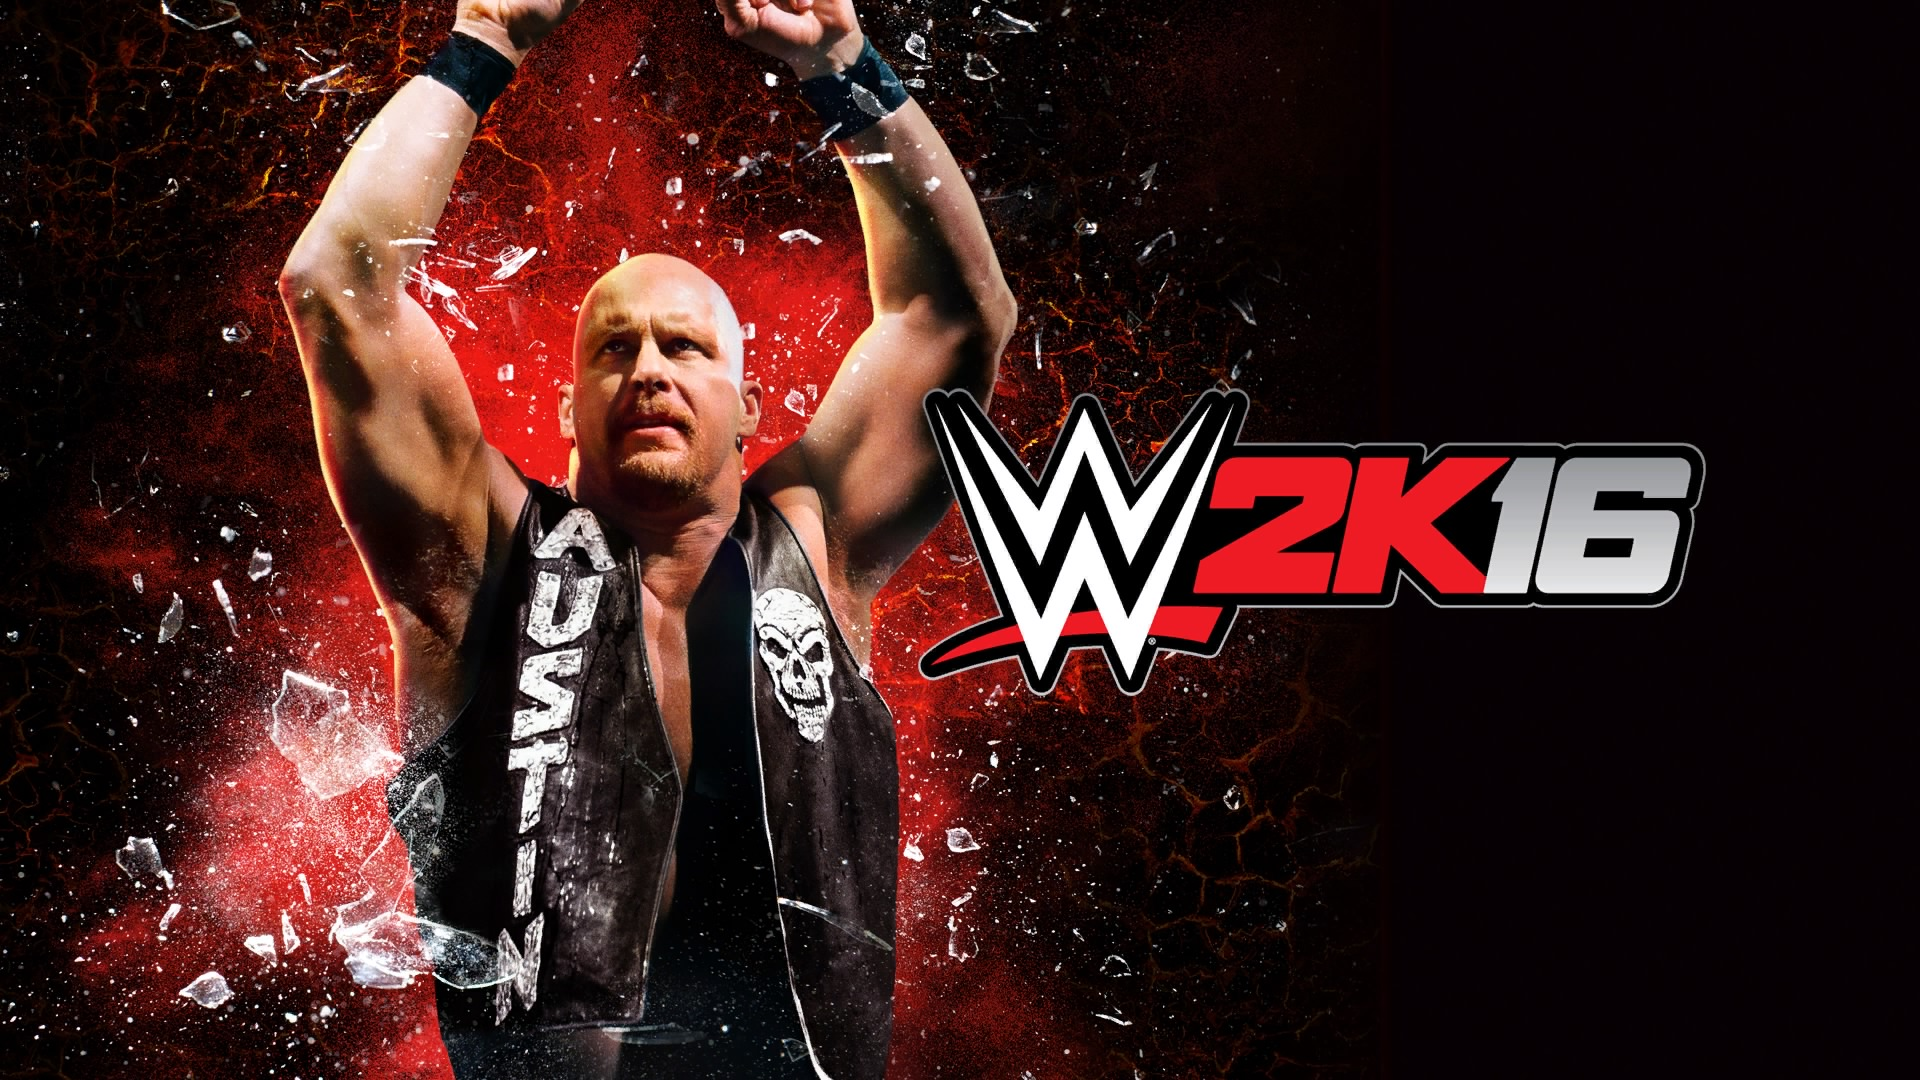 WWE 2K Images WWE 2K16 PS4 HD Wallpaper And Background